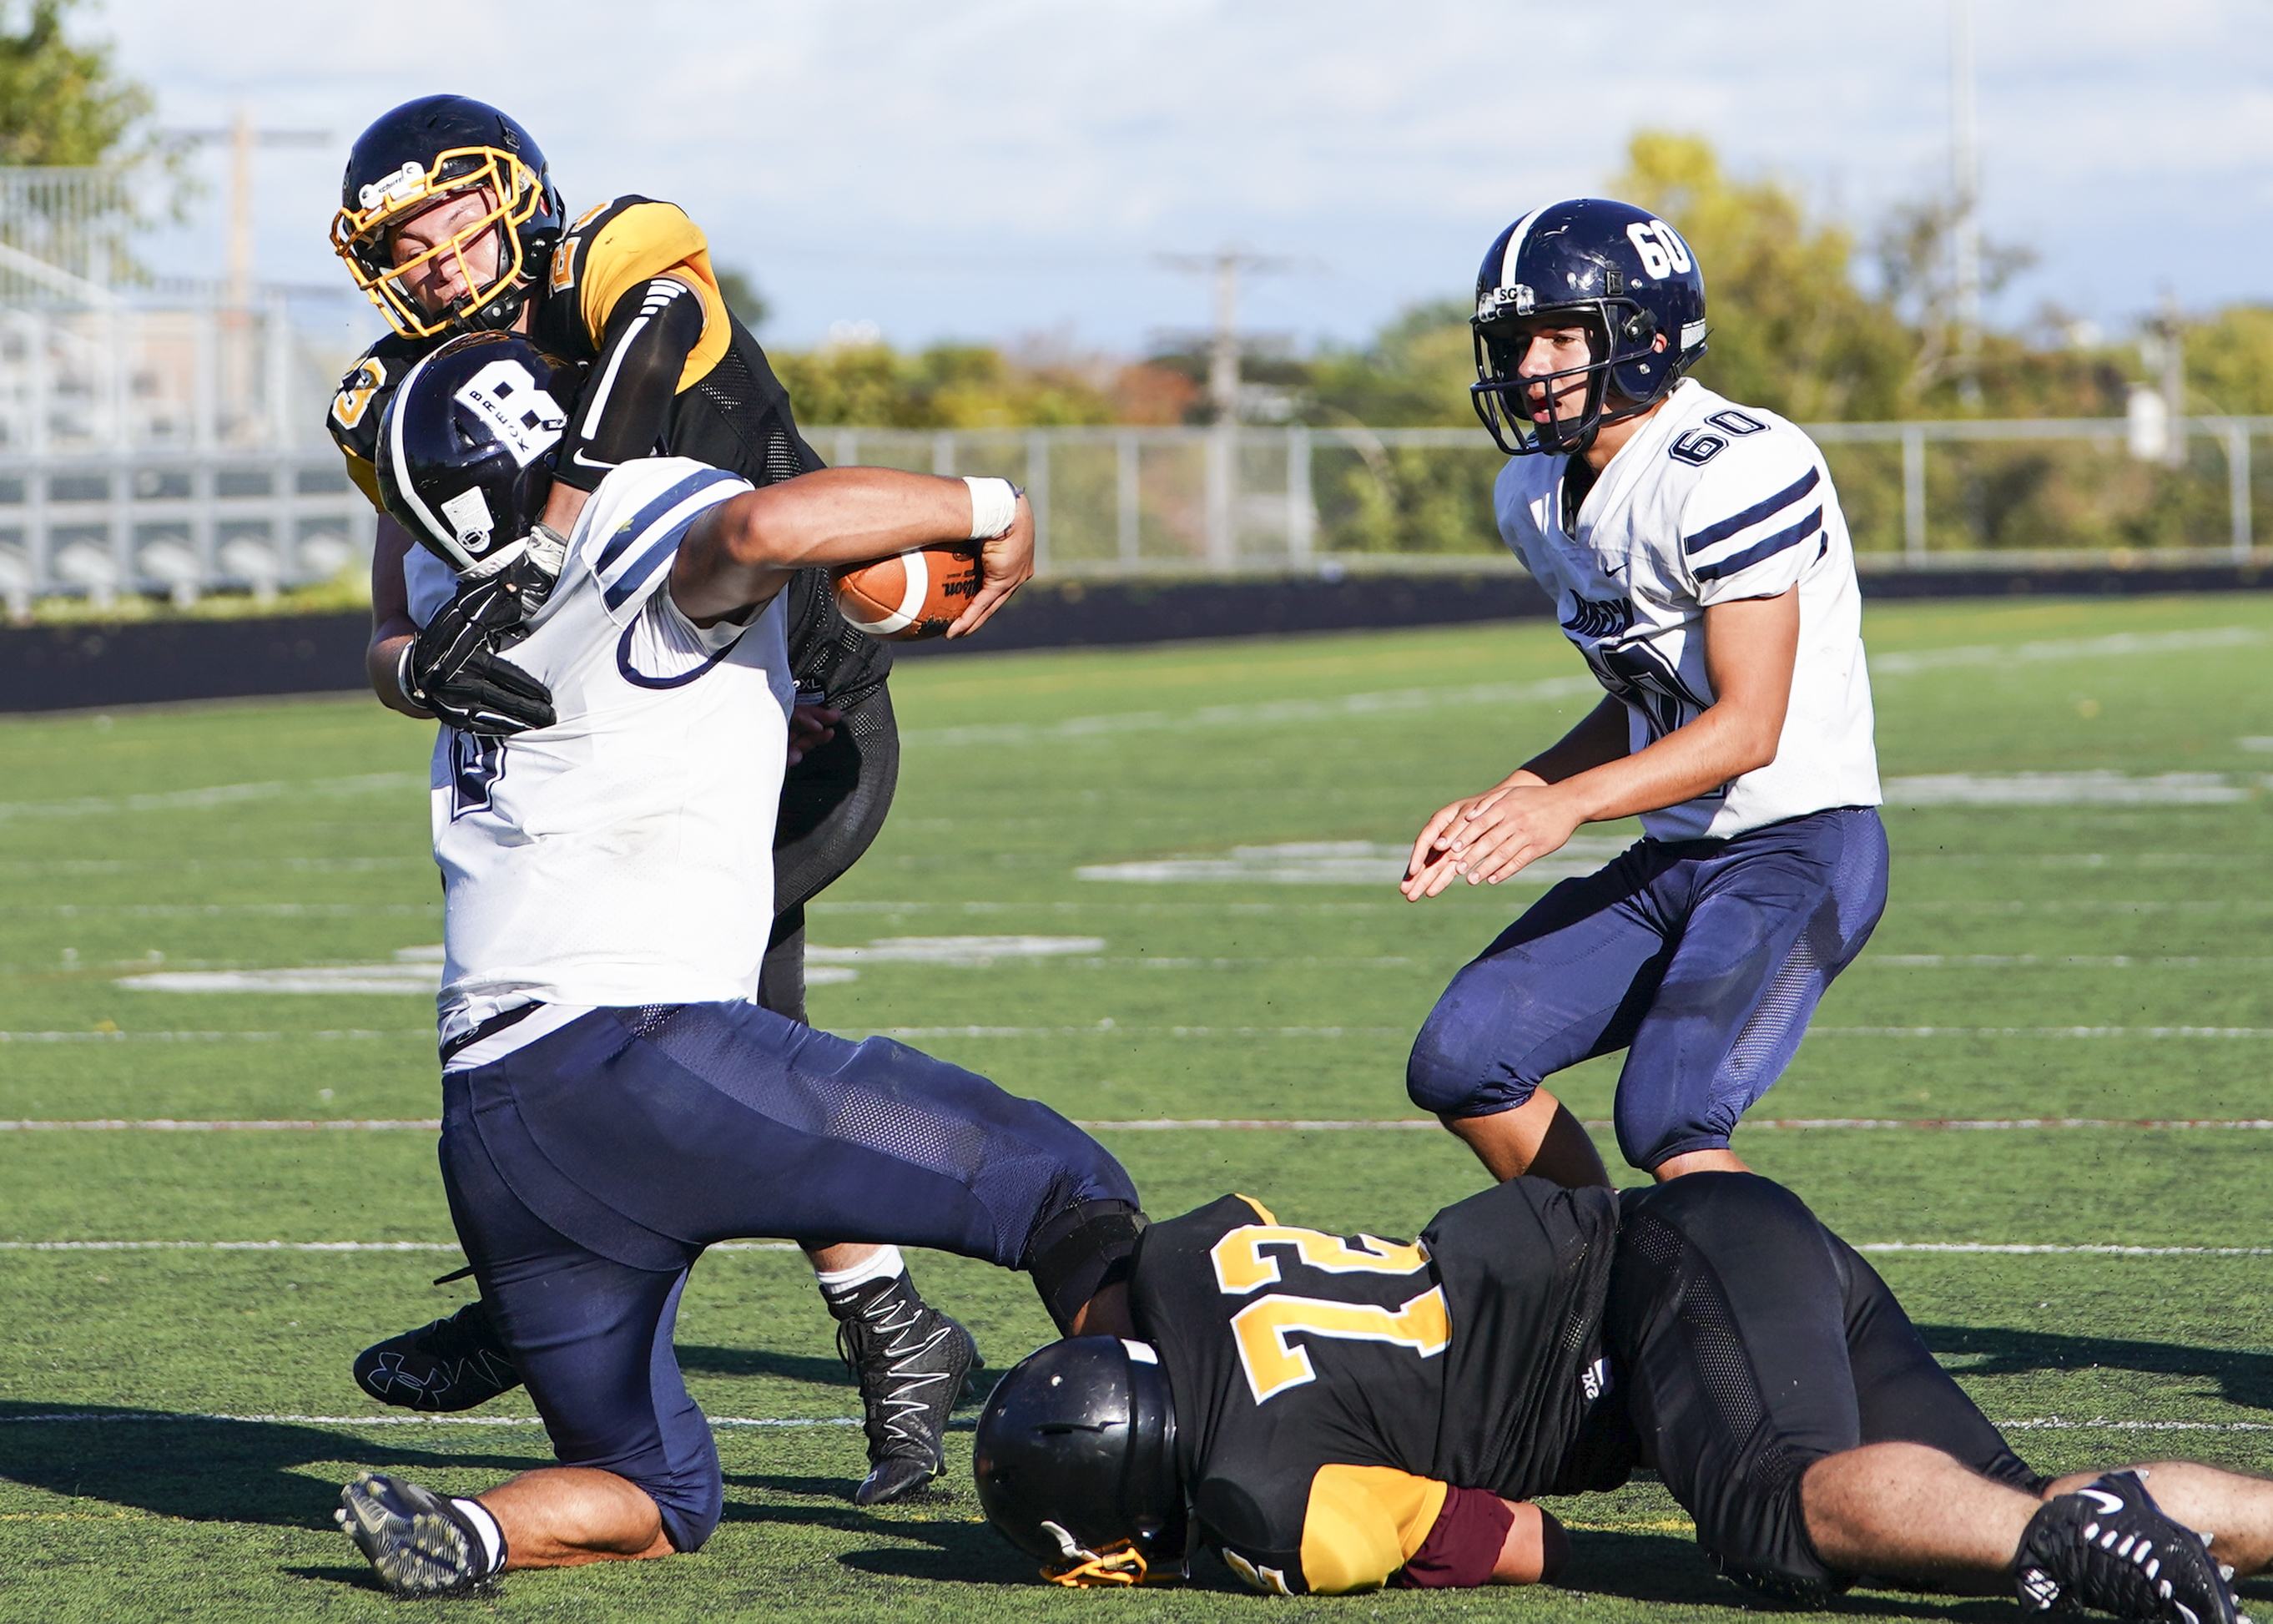 Como Park senior linebacker Donnie Ventrelli (23) collaborates with teammate Kaspian Menne (72) to sack Mustangs quarterback David Roddy late in the 3rd quarter as Como Park wins their homecoming game 18-13. Photo by Travis Ellison, SportsEngine